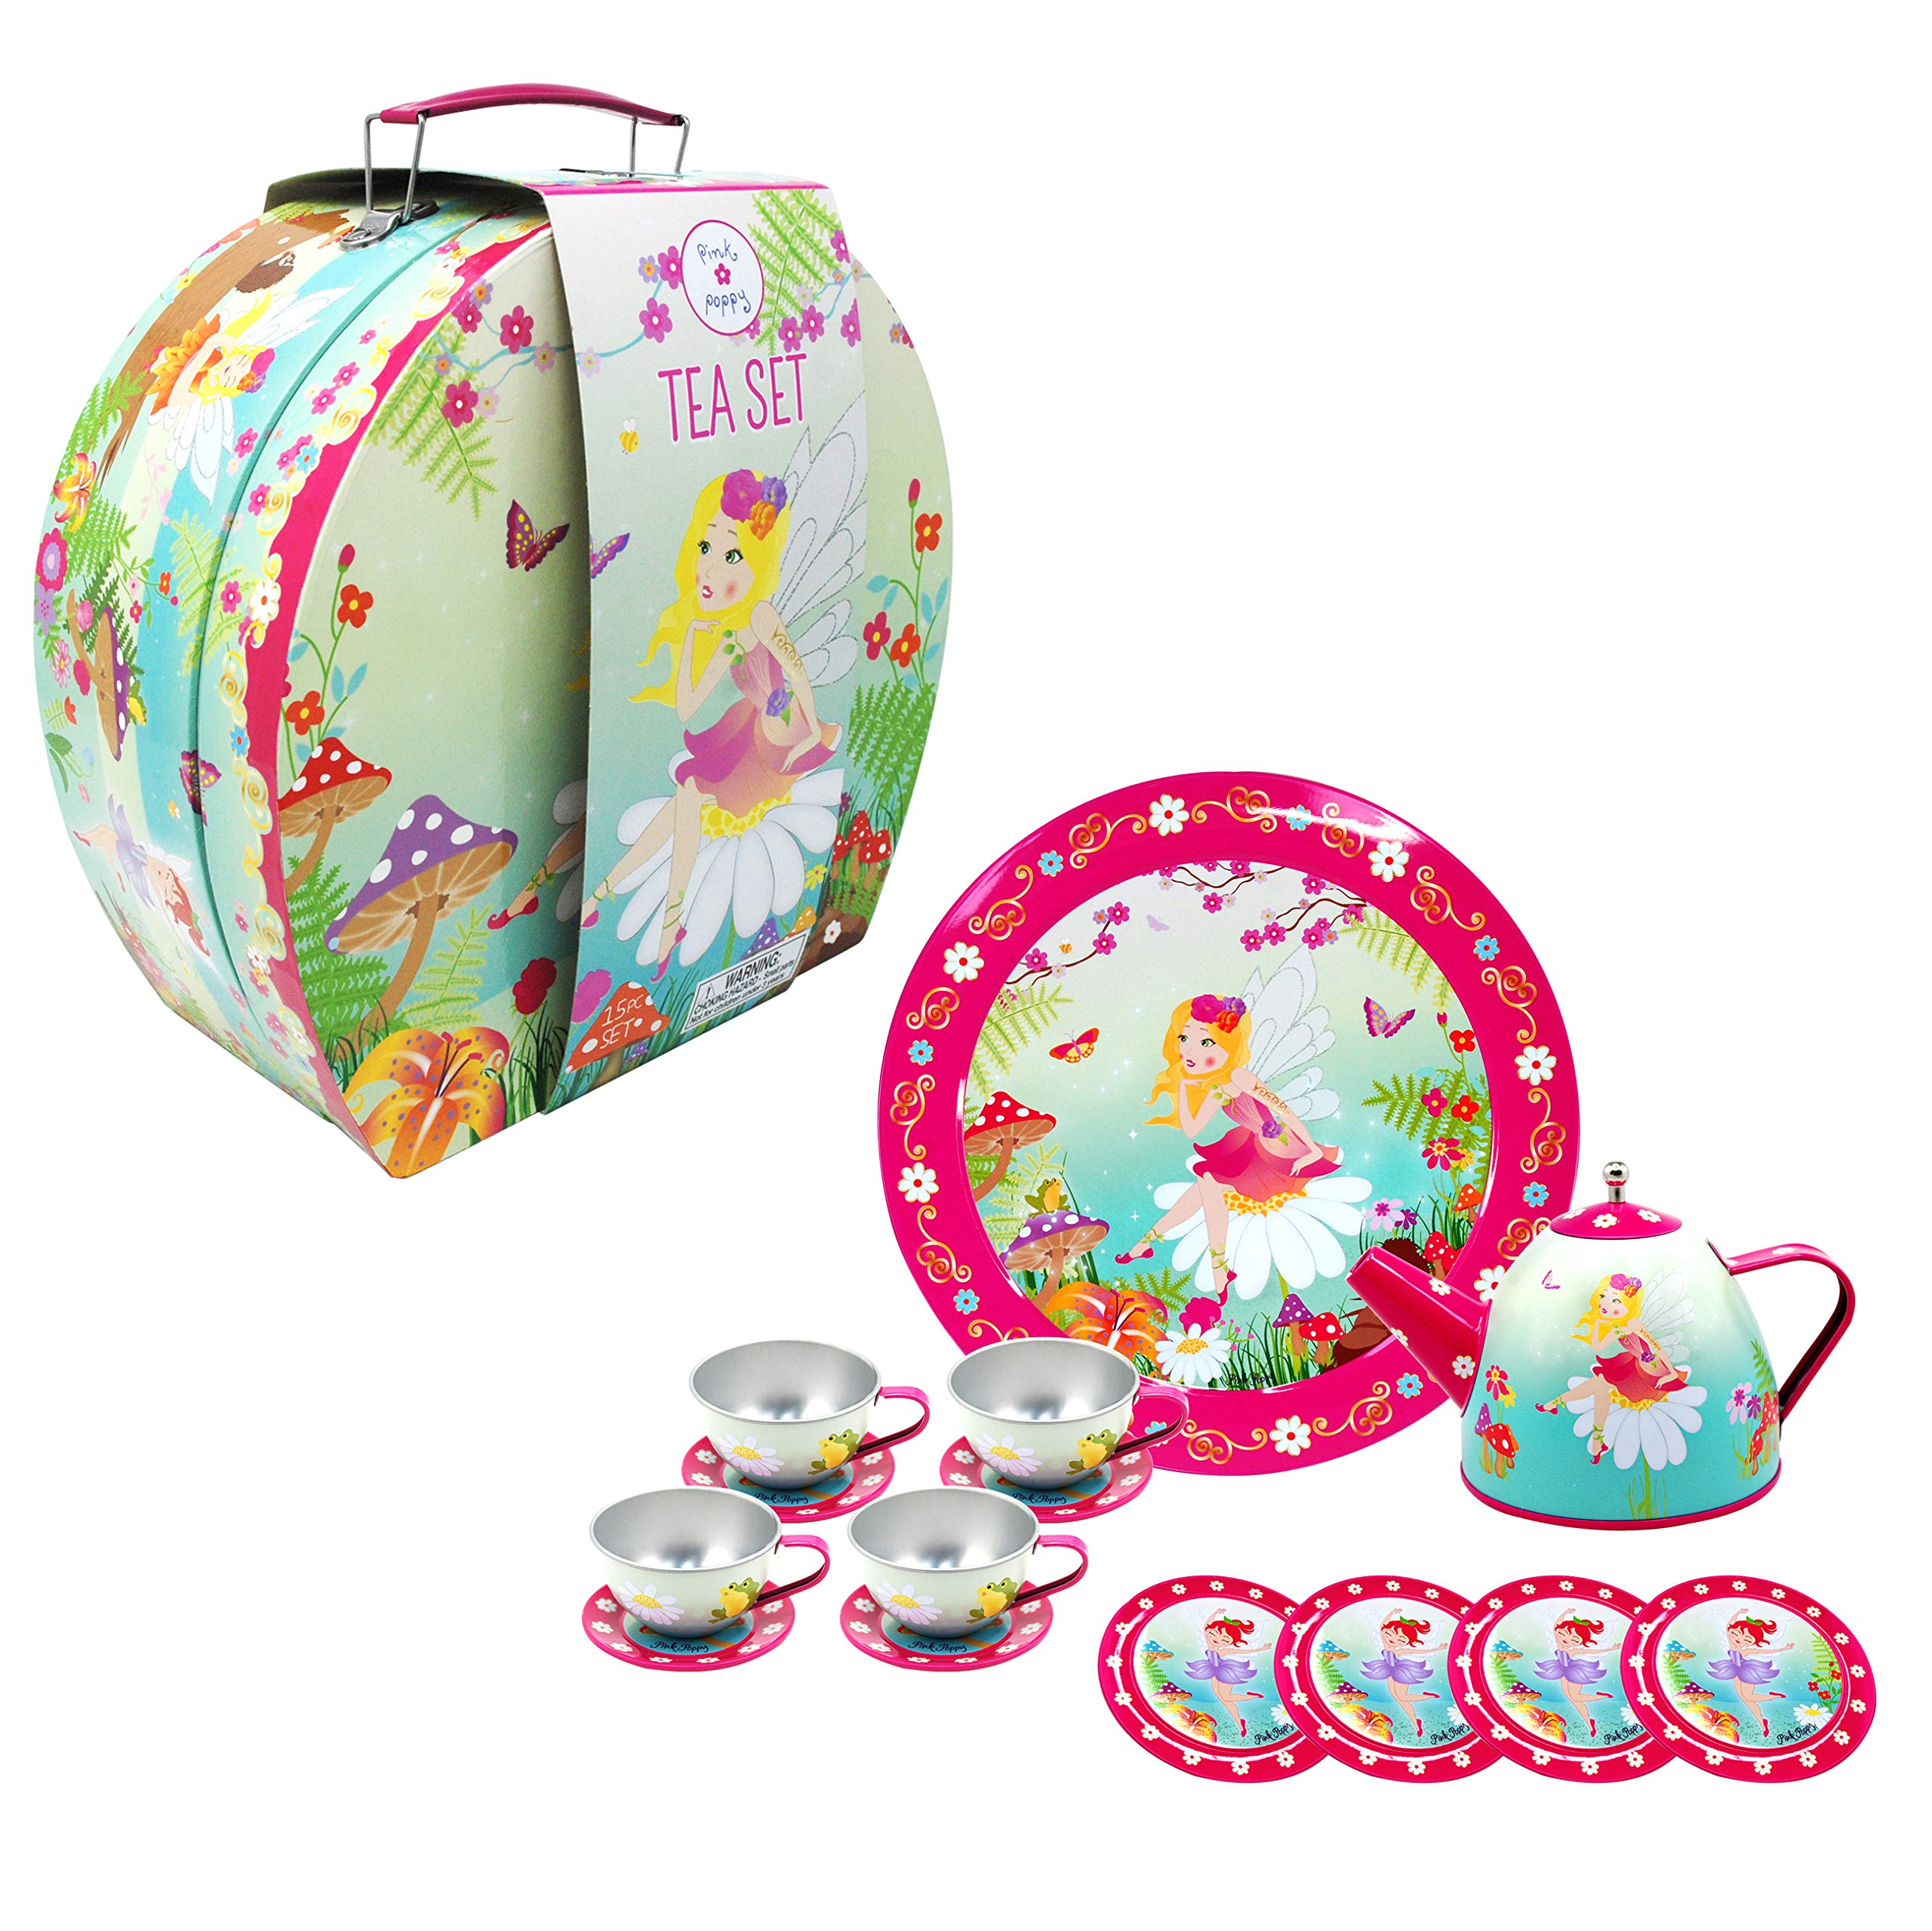 Pink Poppy Forest Fairy Floral Green 10 x 9 Tin Metal Toy 14 Piece Tea Set in Carry Case